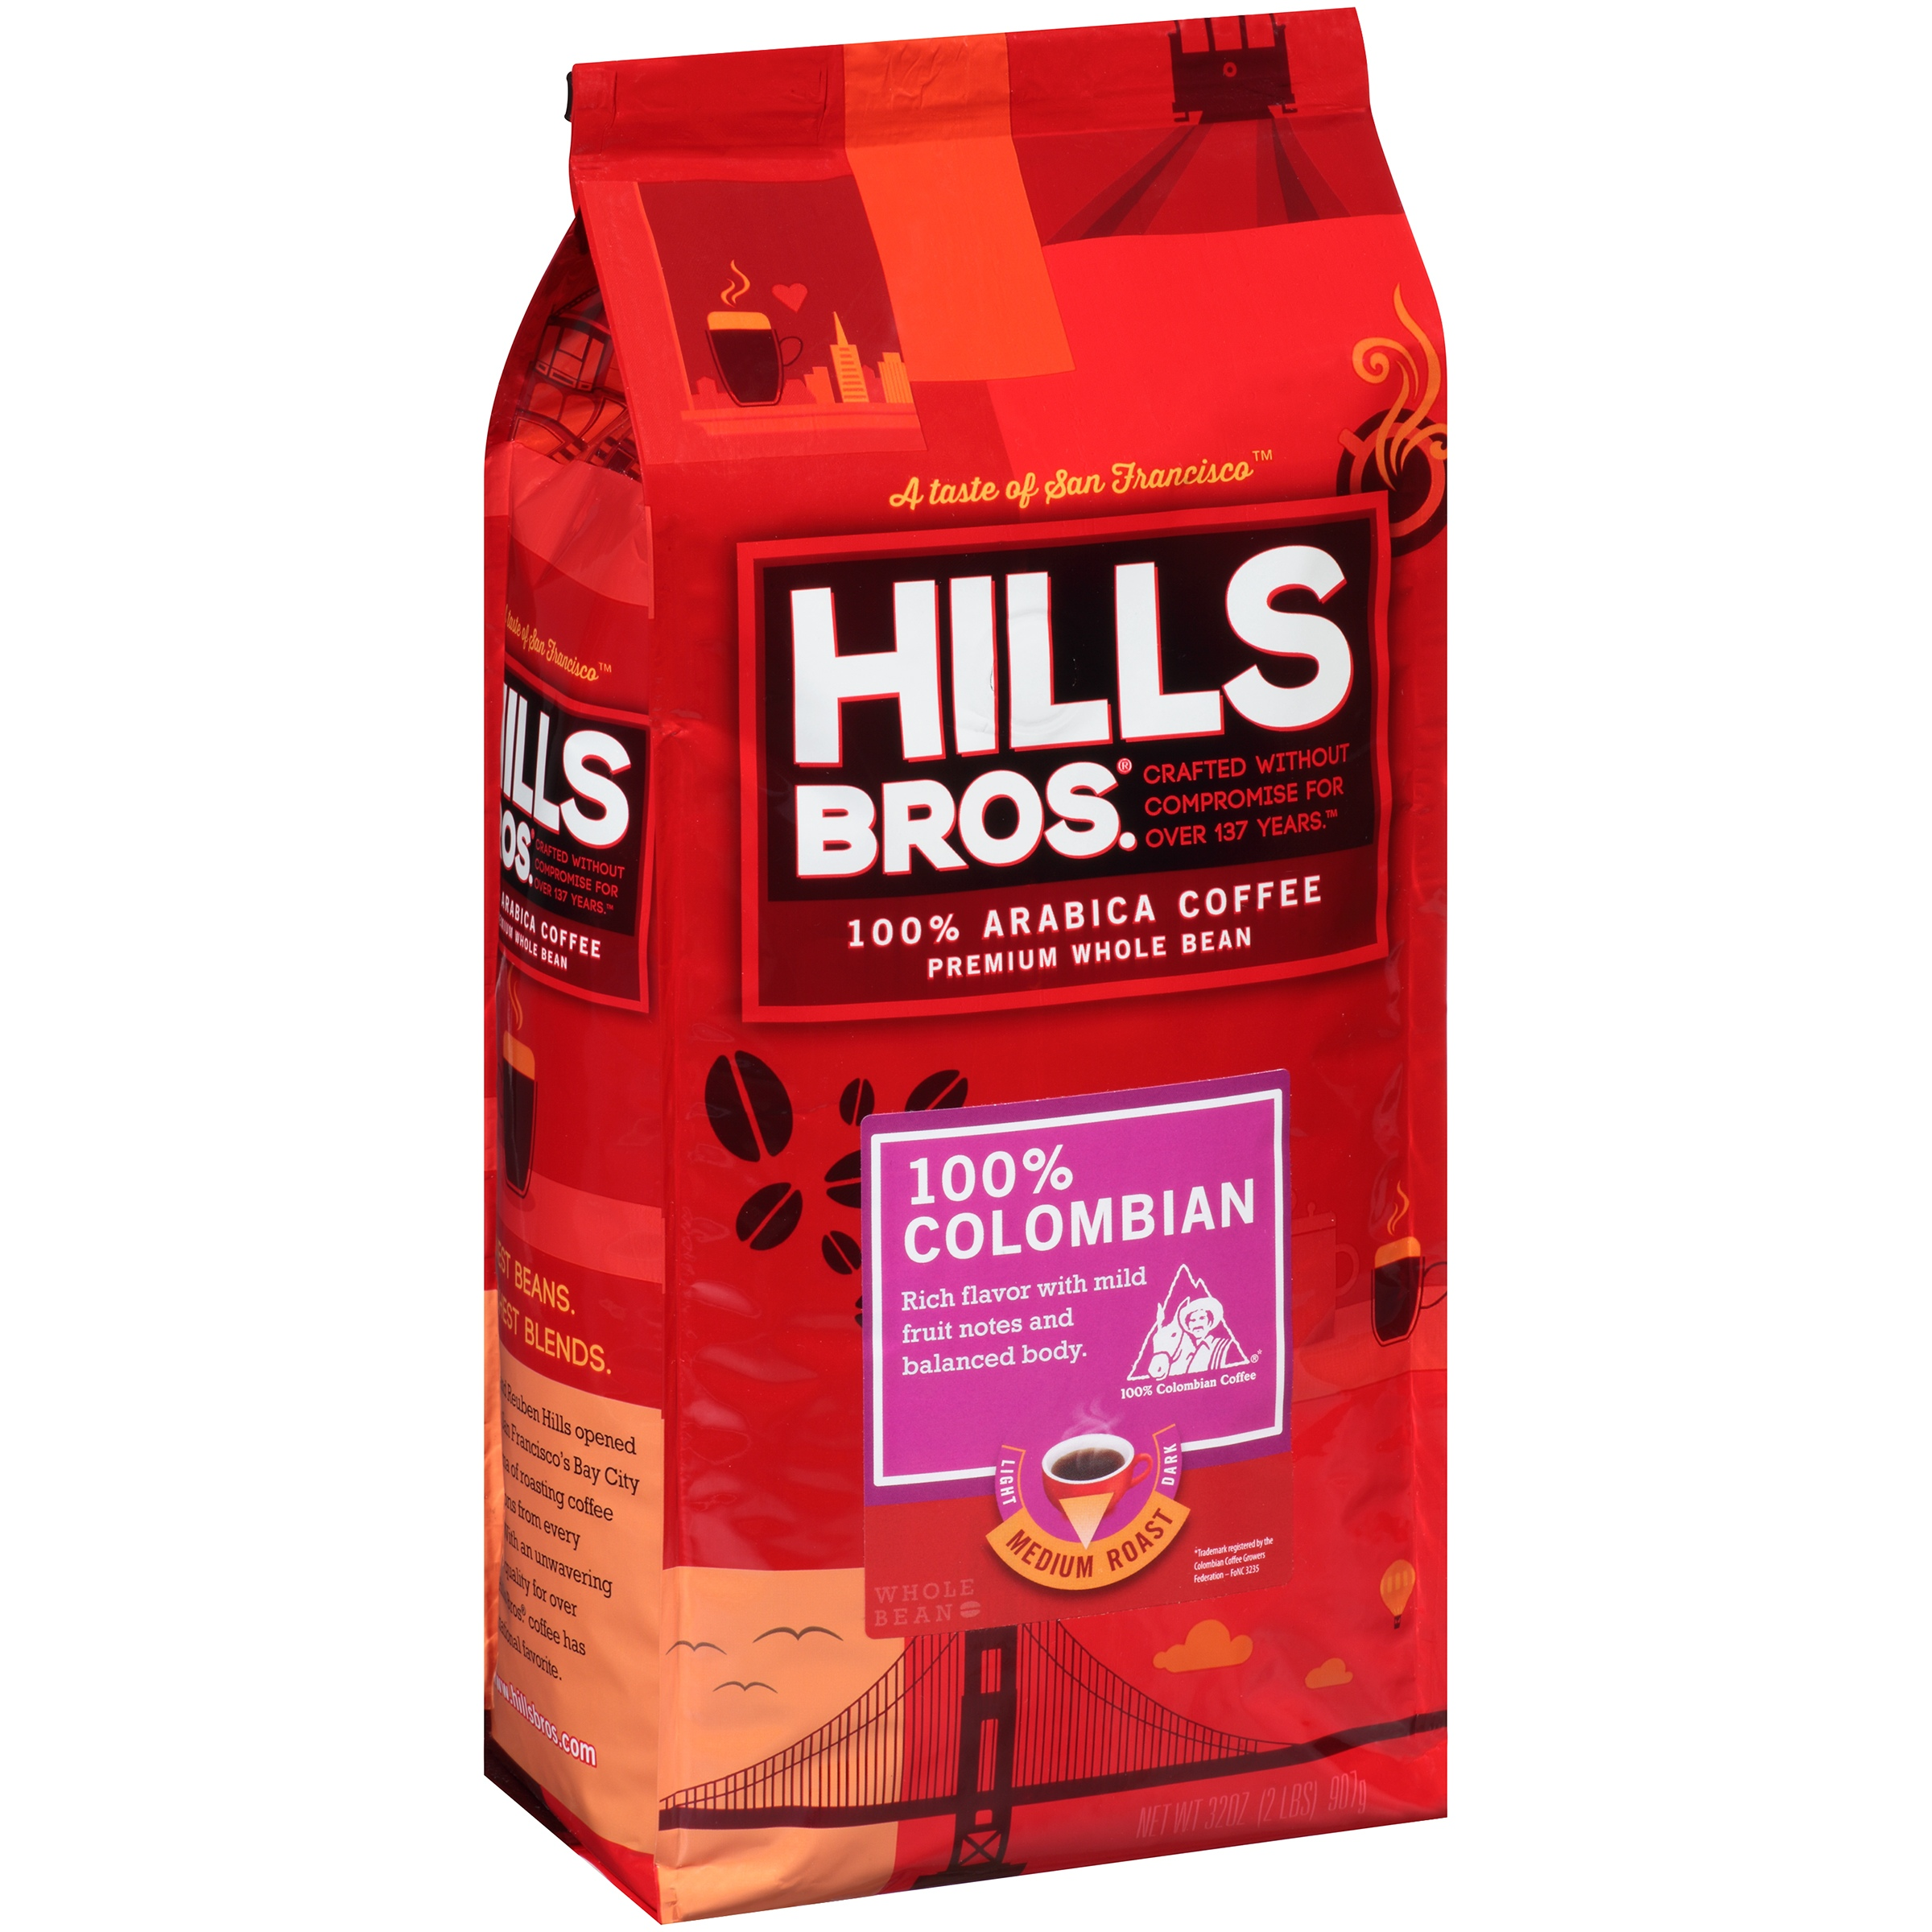 Hills Bros. 100% Colombian Premium Whole Bean Medium Roast Coffee, 32 oz